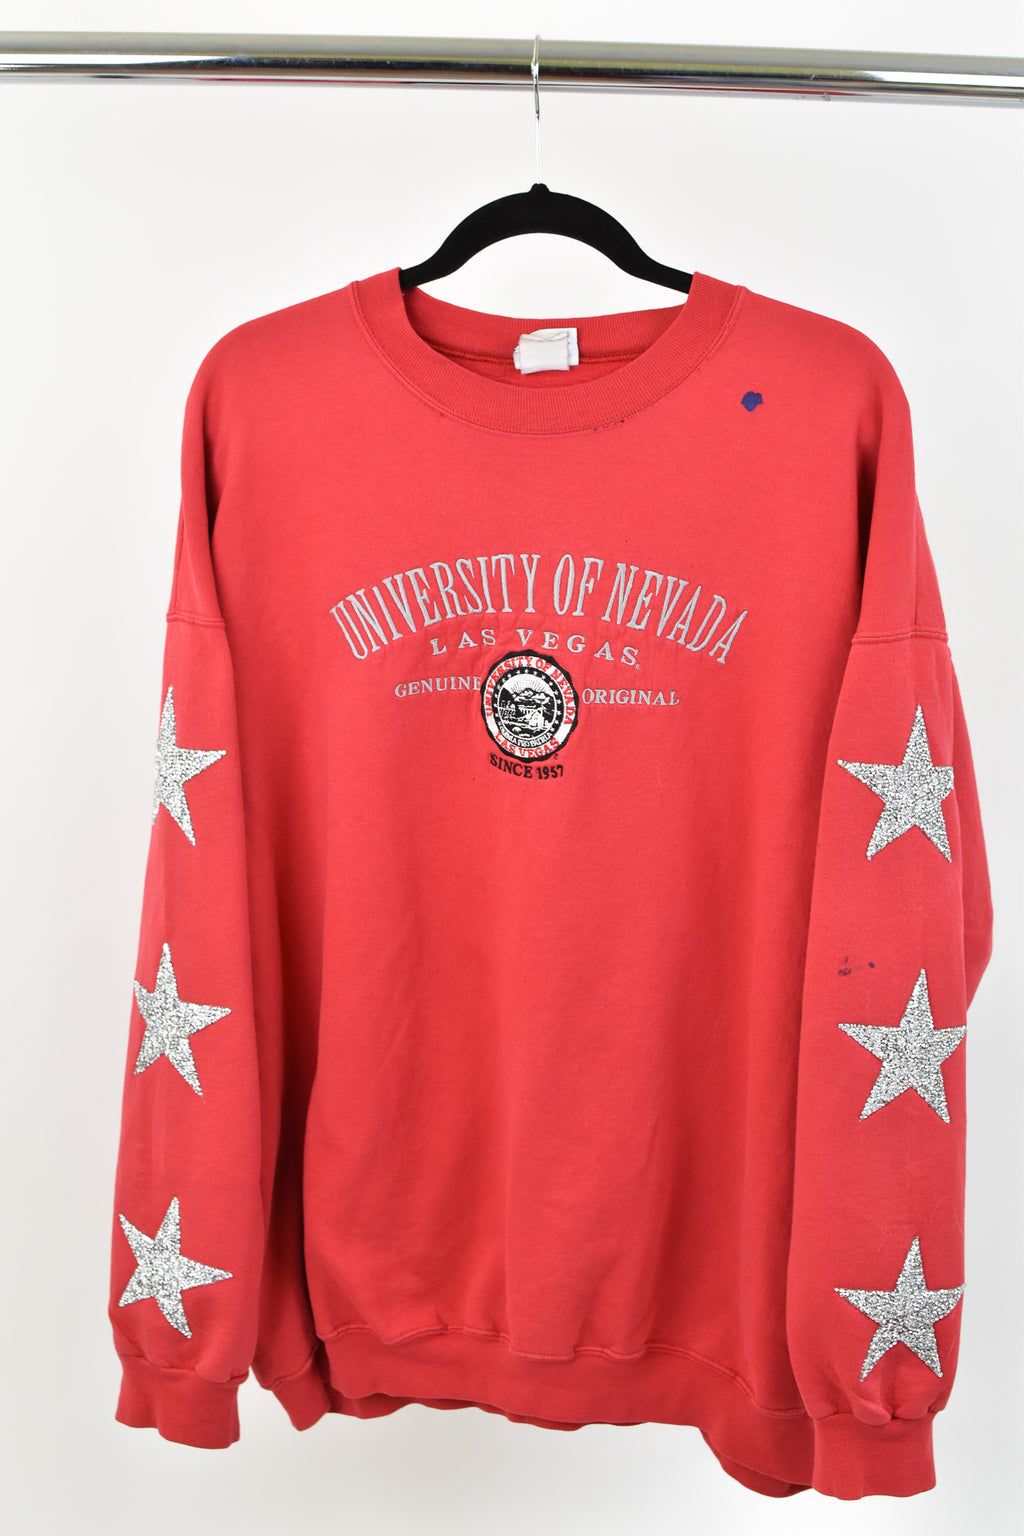 Upcycled VINTAGE University of Nevada Sweatshirt